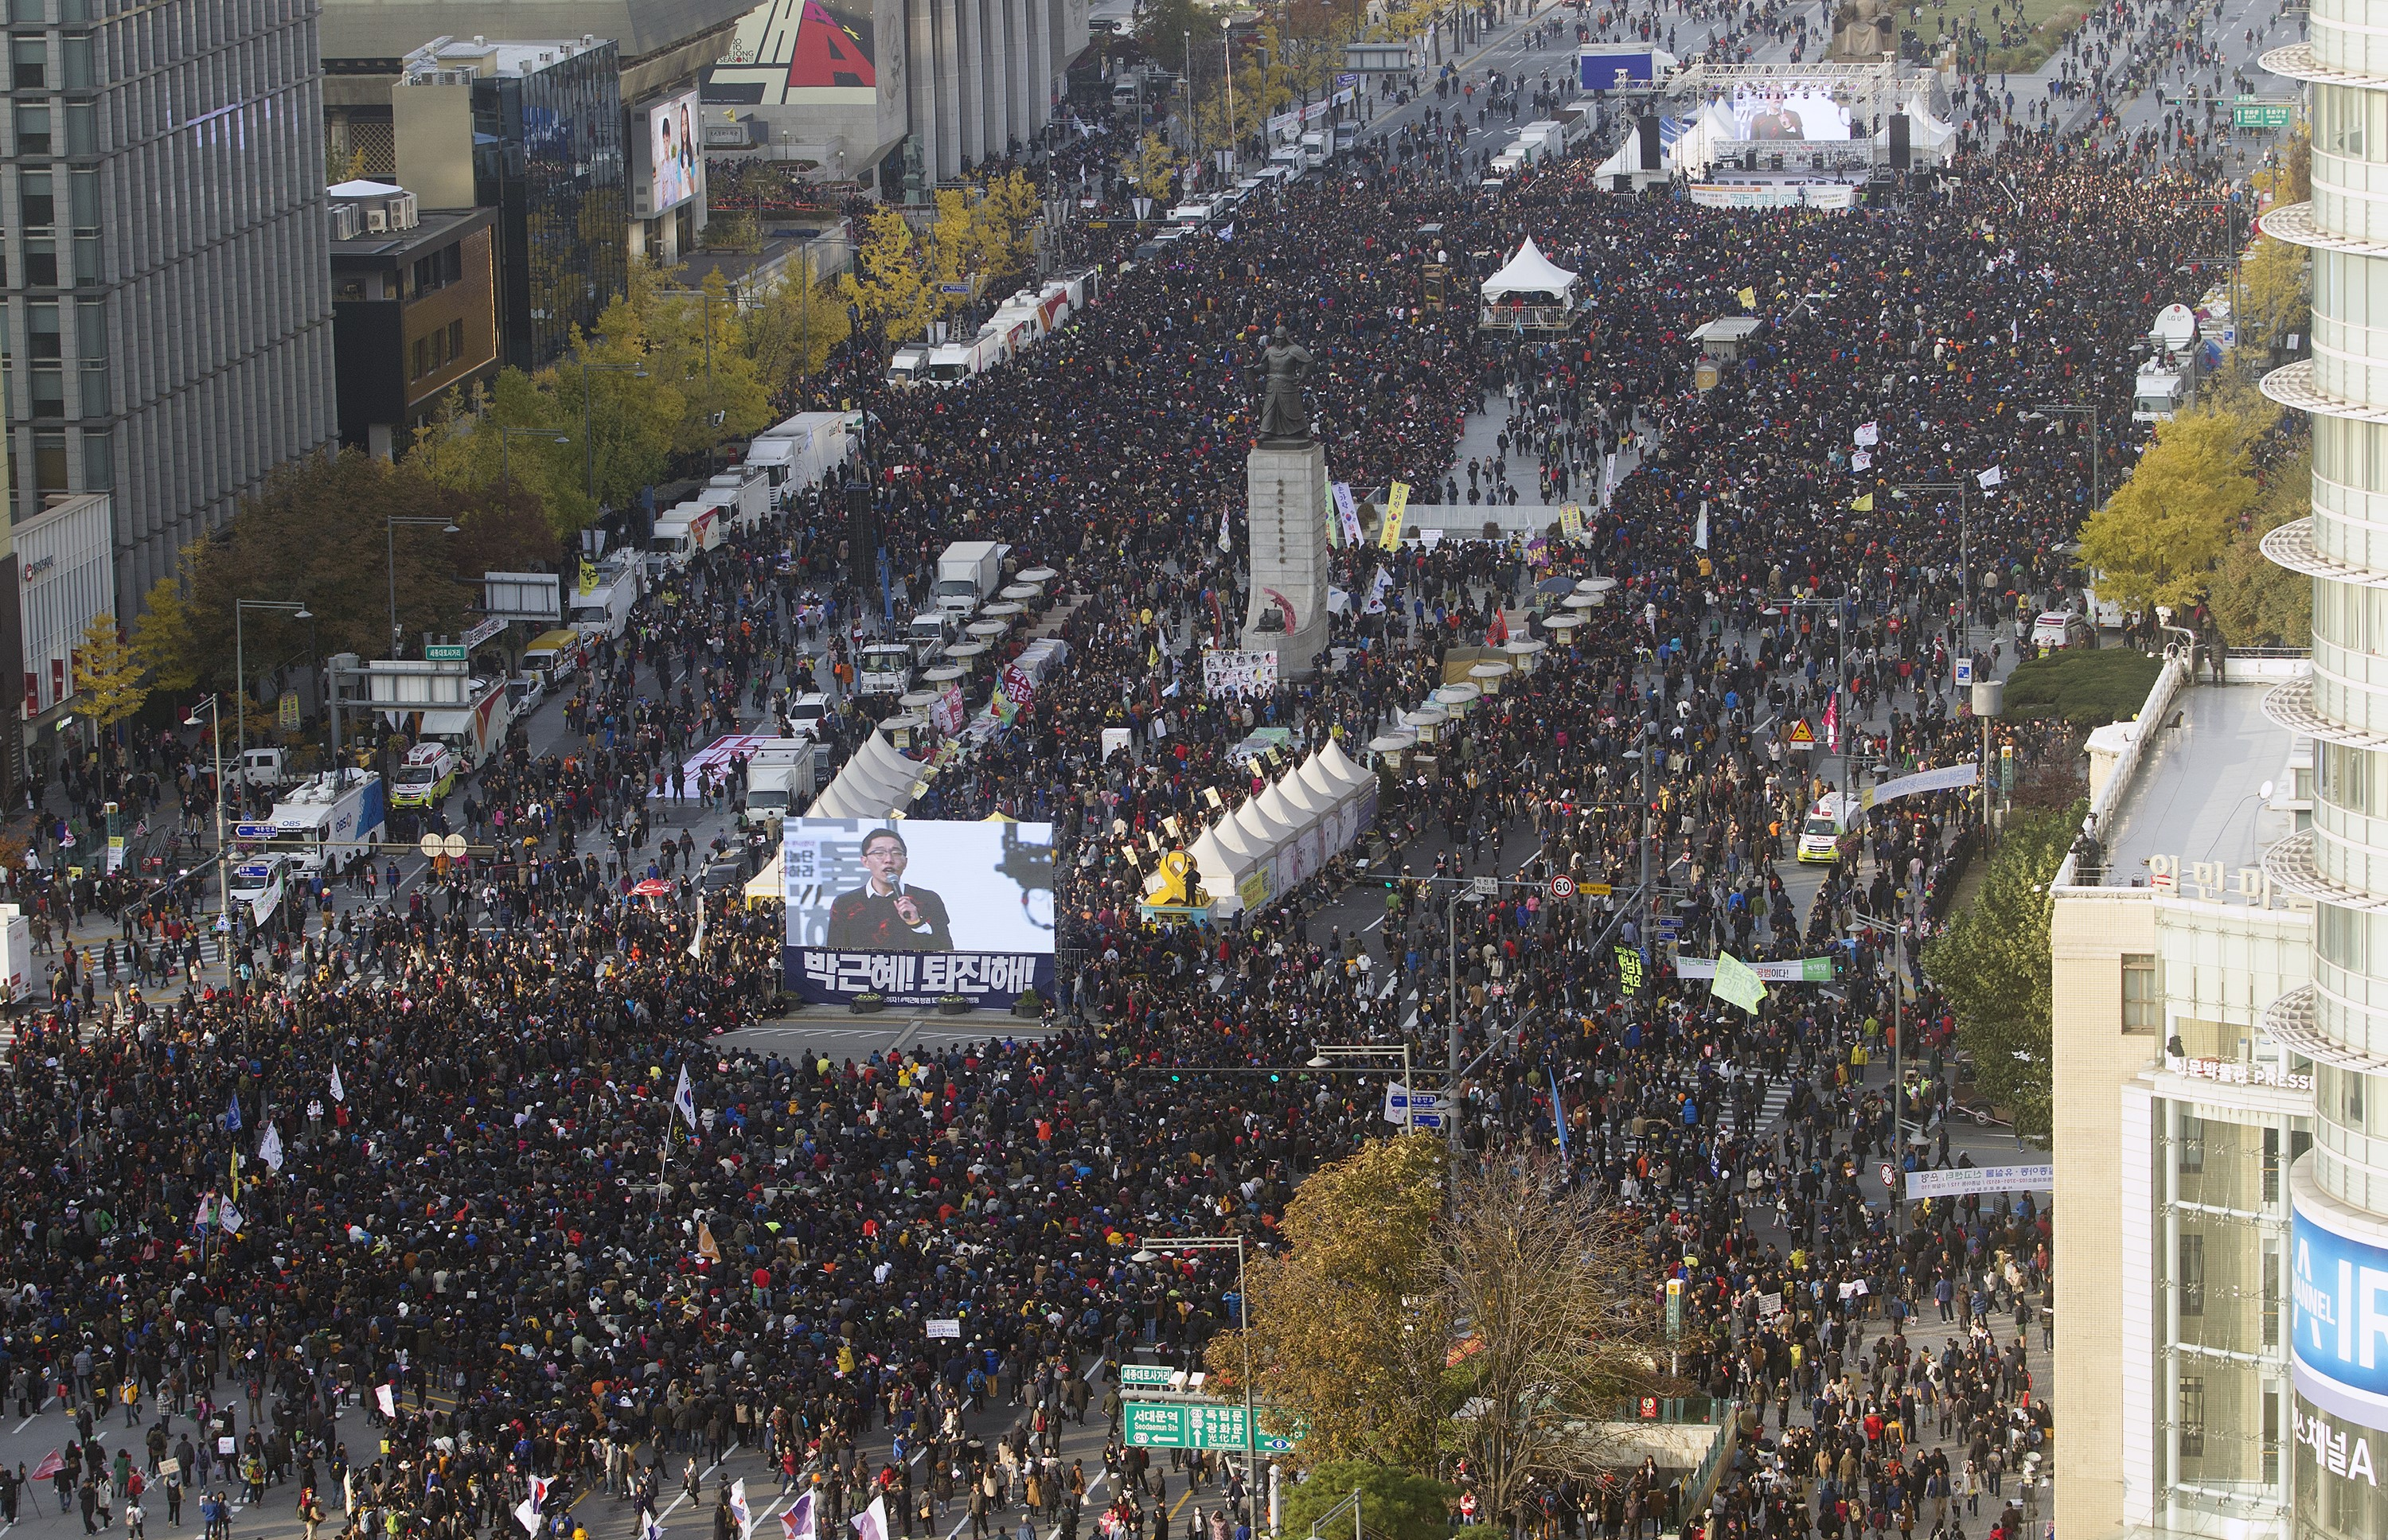 Protest against President Park Geun-hye in South Korea